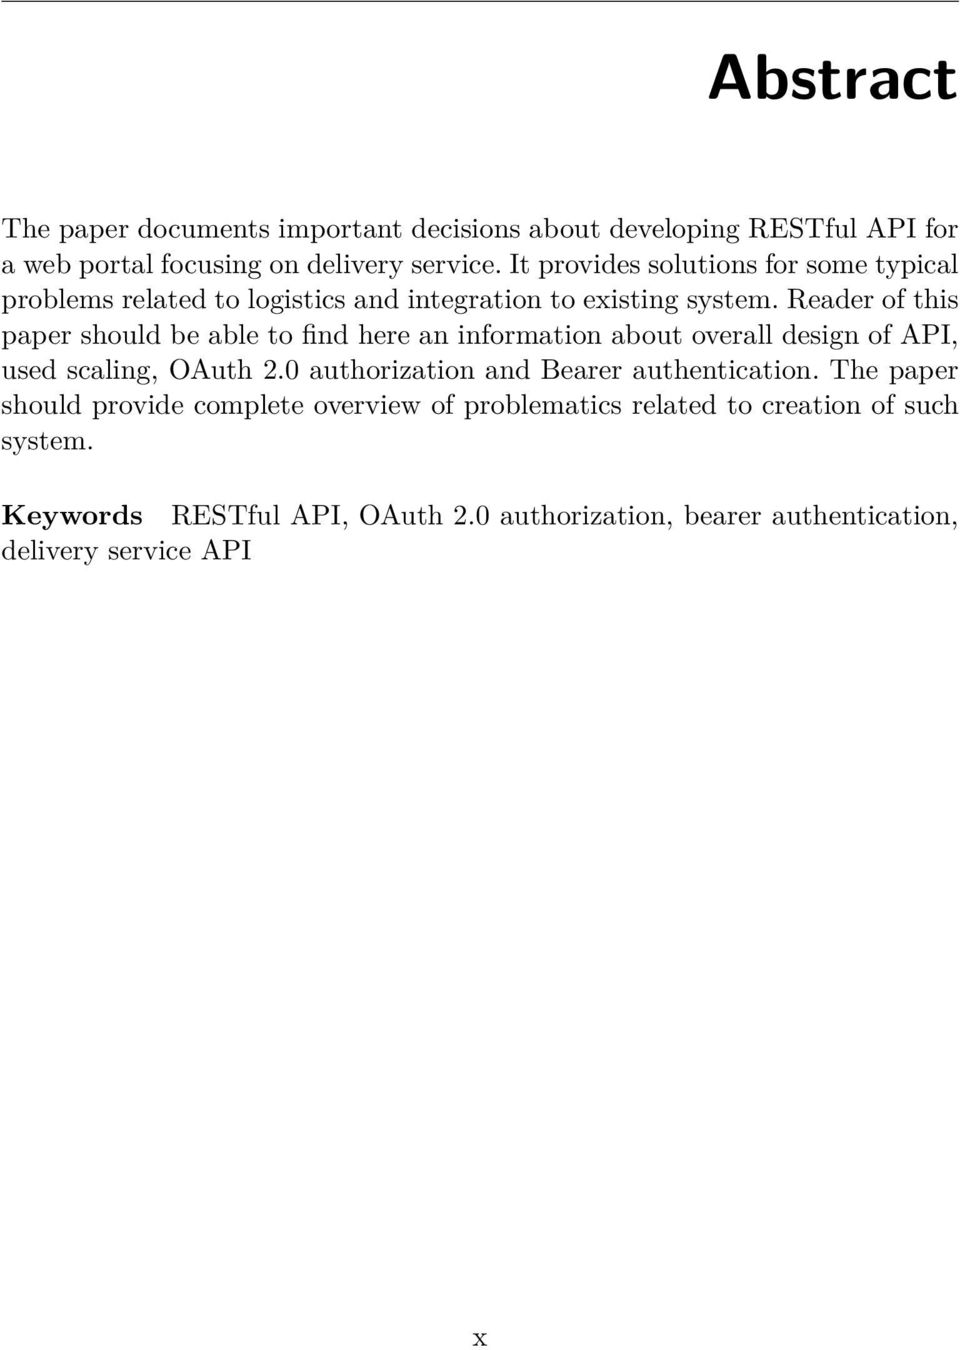 Reader of this paper should be able to find here an information about overall design of API, used scaling, OAuth 2.